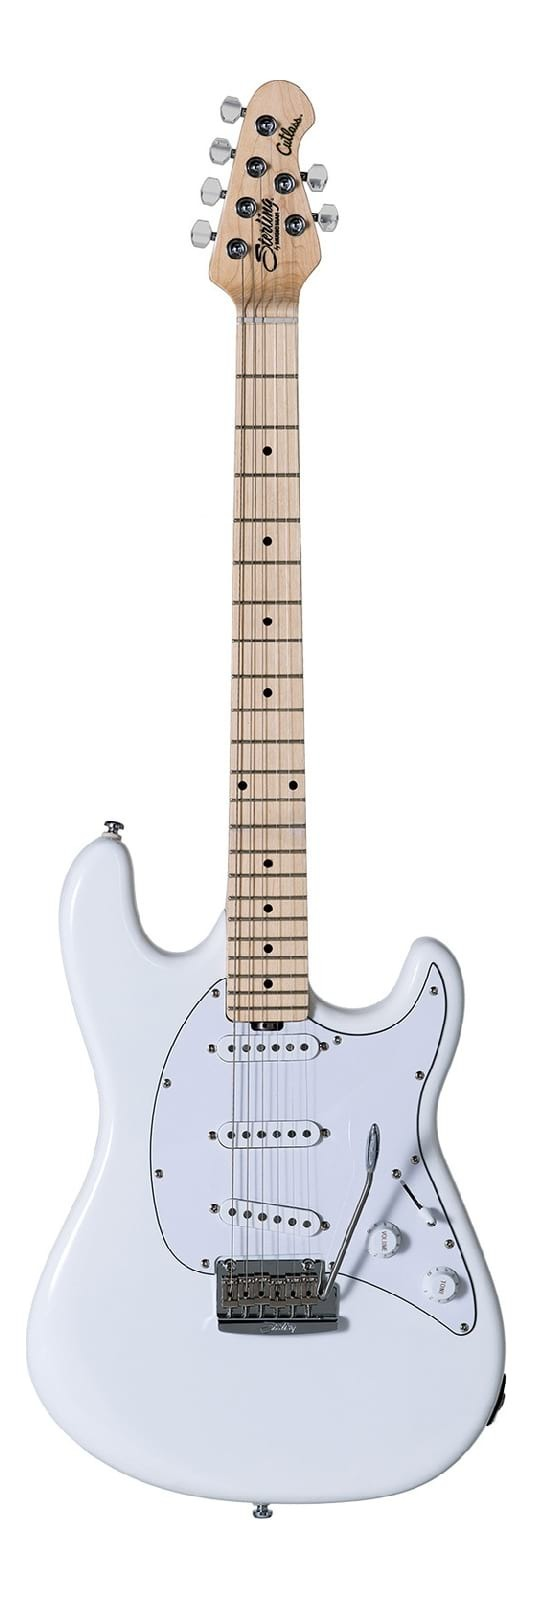 Sterling Cutlass CT50 Electric Guitar - Olympic White